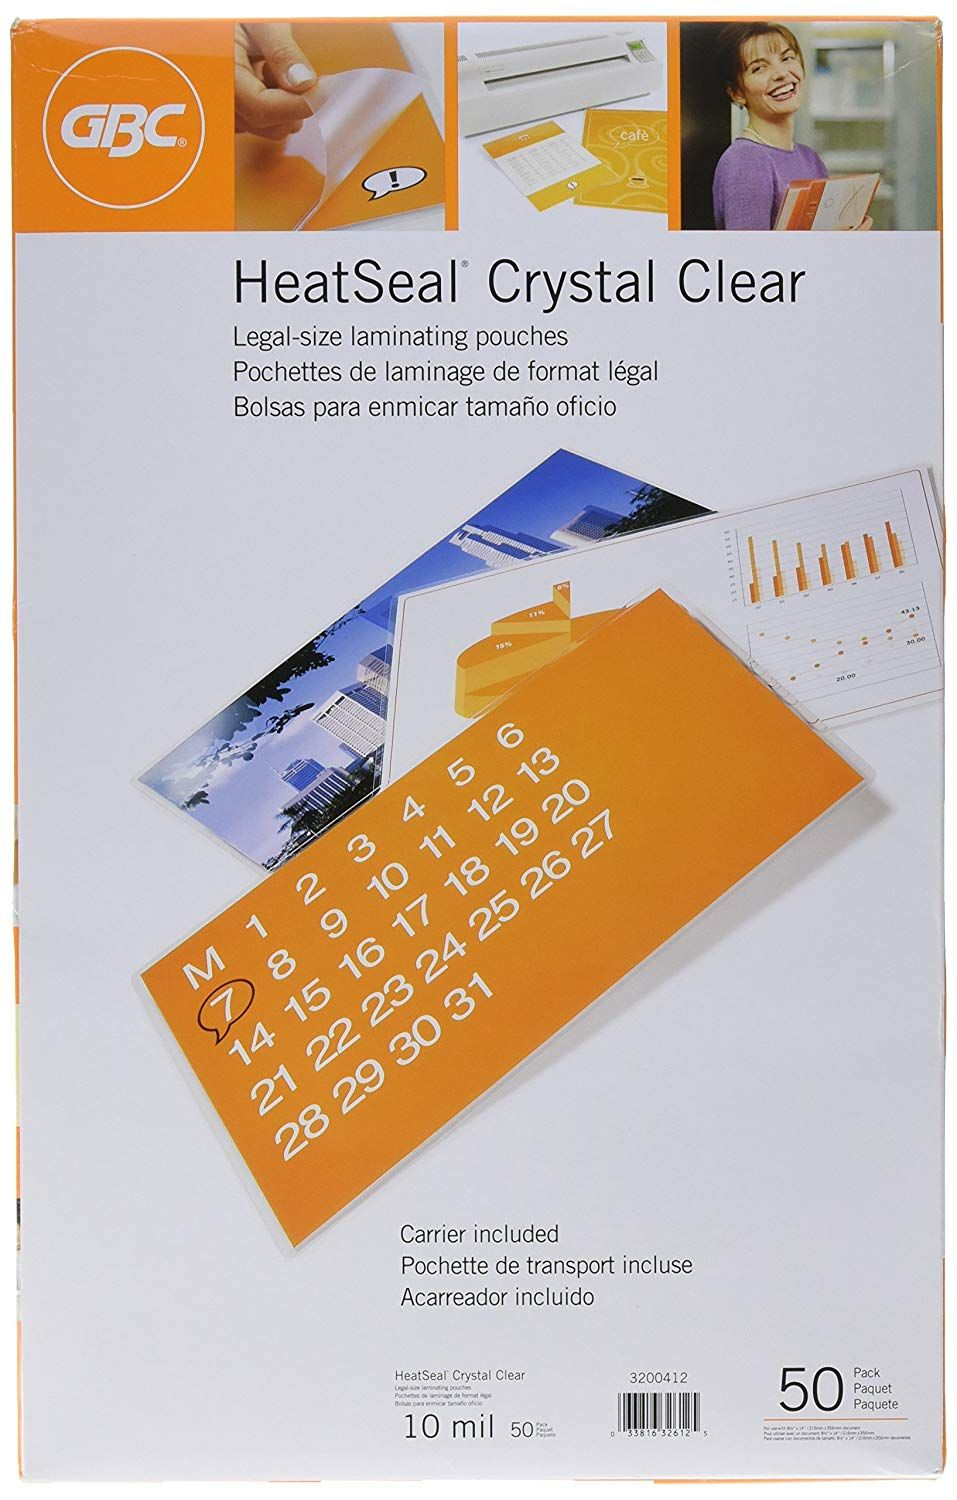 Gbc Laminating Sheets Thermal Laminating Pouches Legal Size 10mil Heatseal Crystal Clear 50 Pack 3200412 Read More In 2020 Glue Crafts Thermal Things To Sell